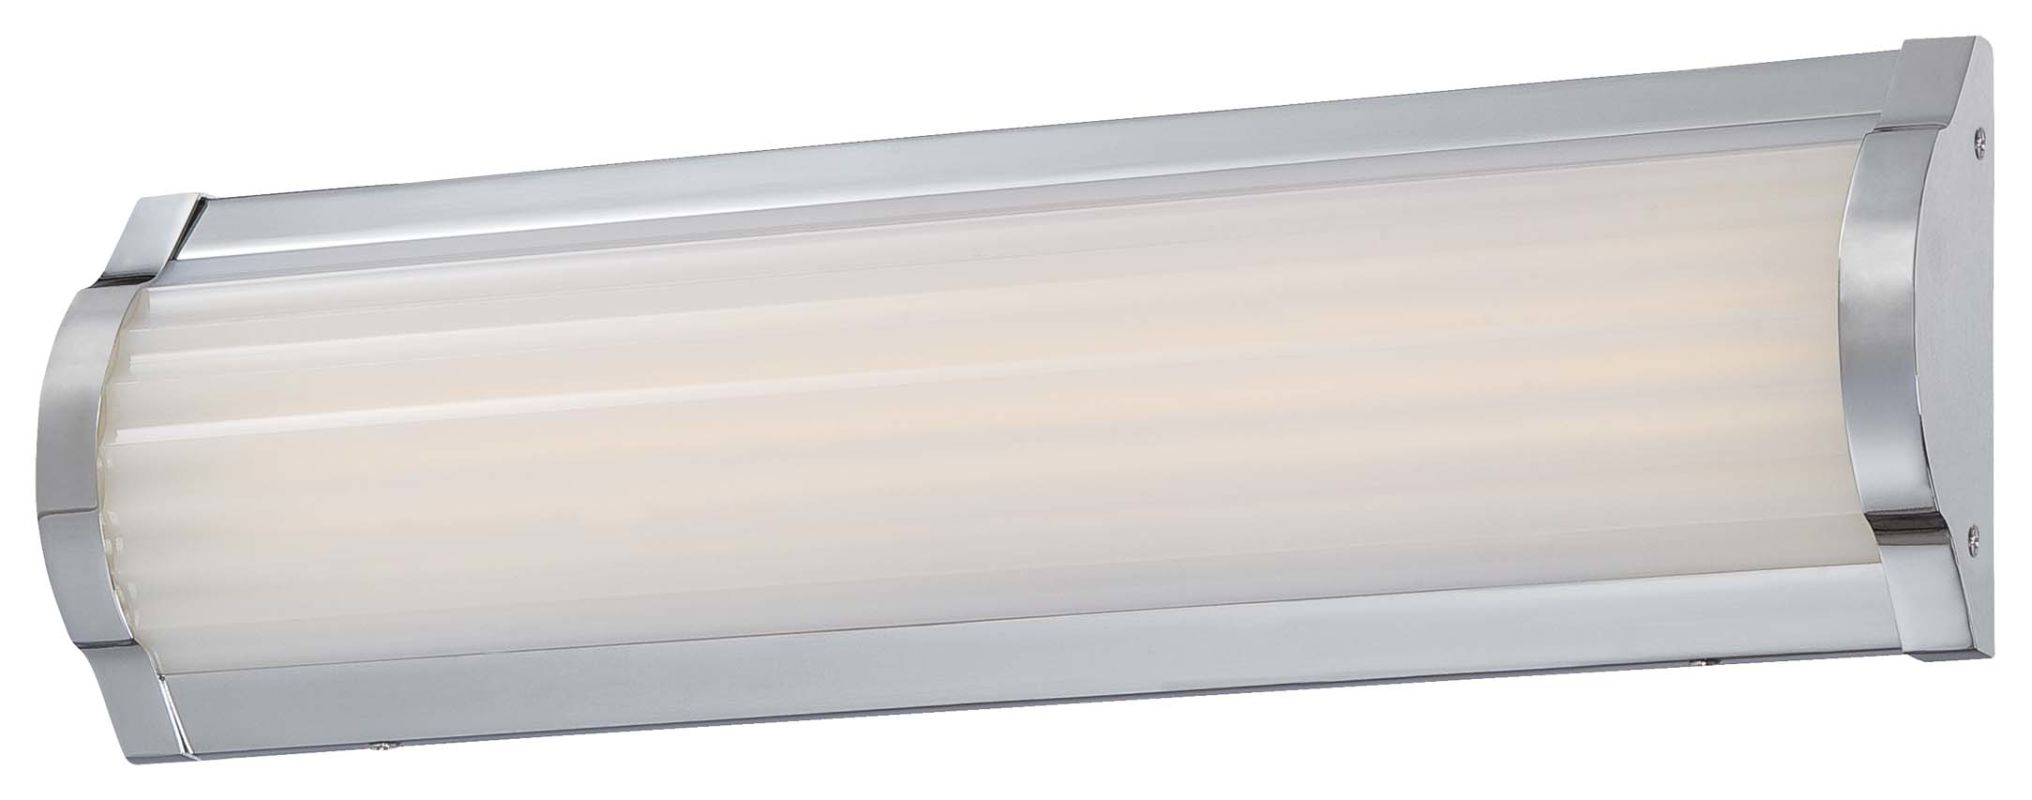 "Kovacs P1172-077-L 1 Light 16"" Width ADA Compliant LED Bathroom Bath"